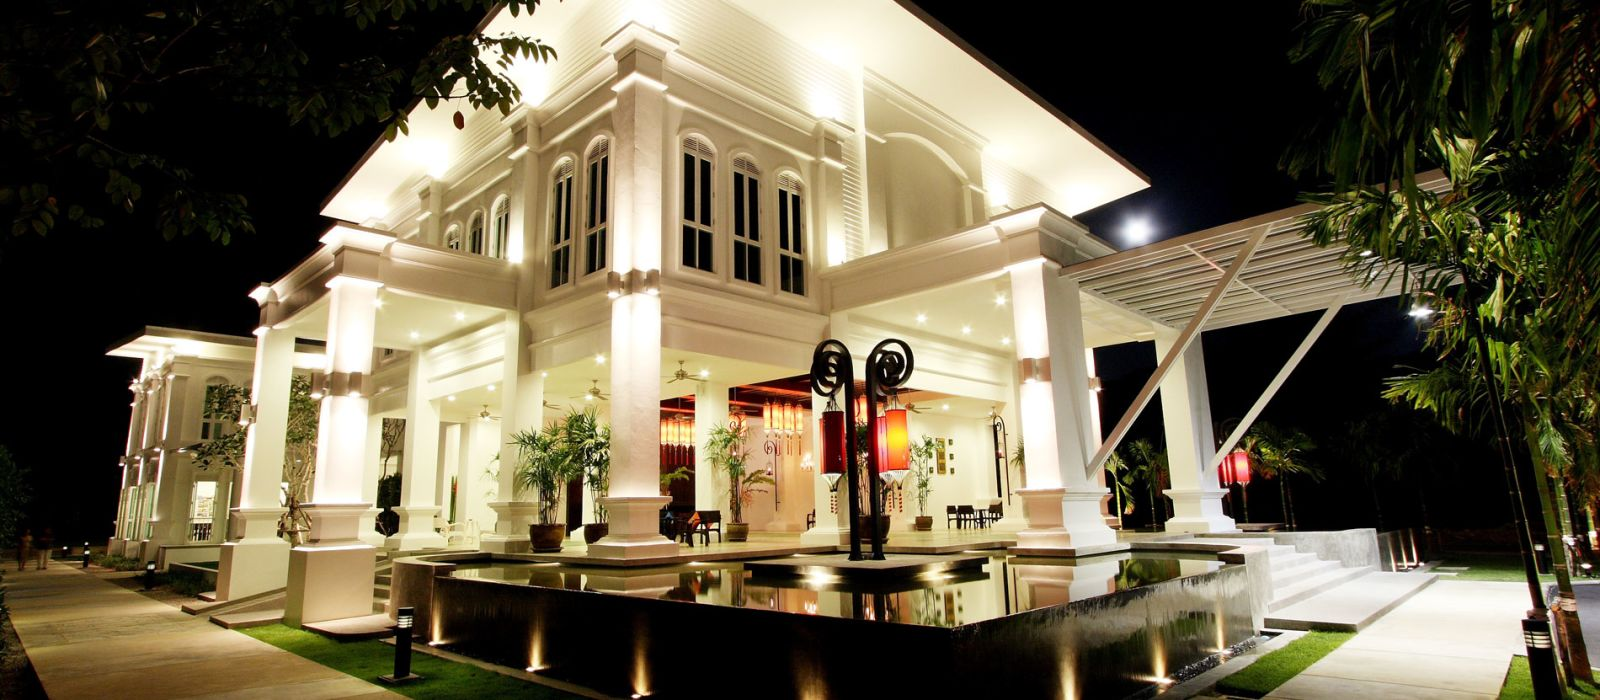 Hotel The Old Phuket Karon Beach Resort Thailand